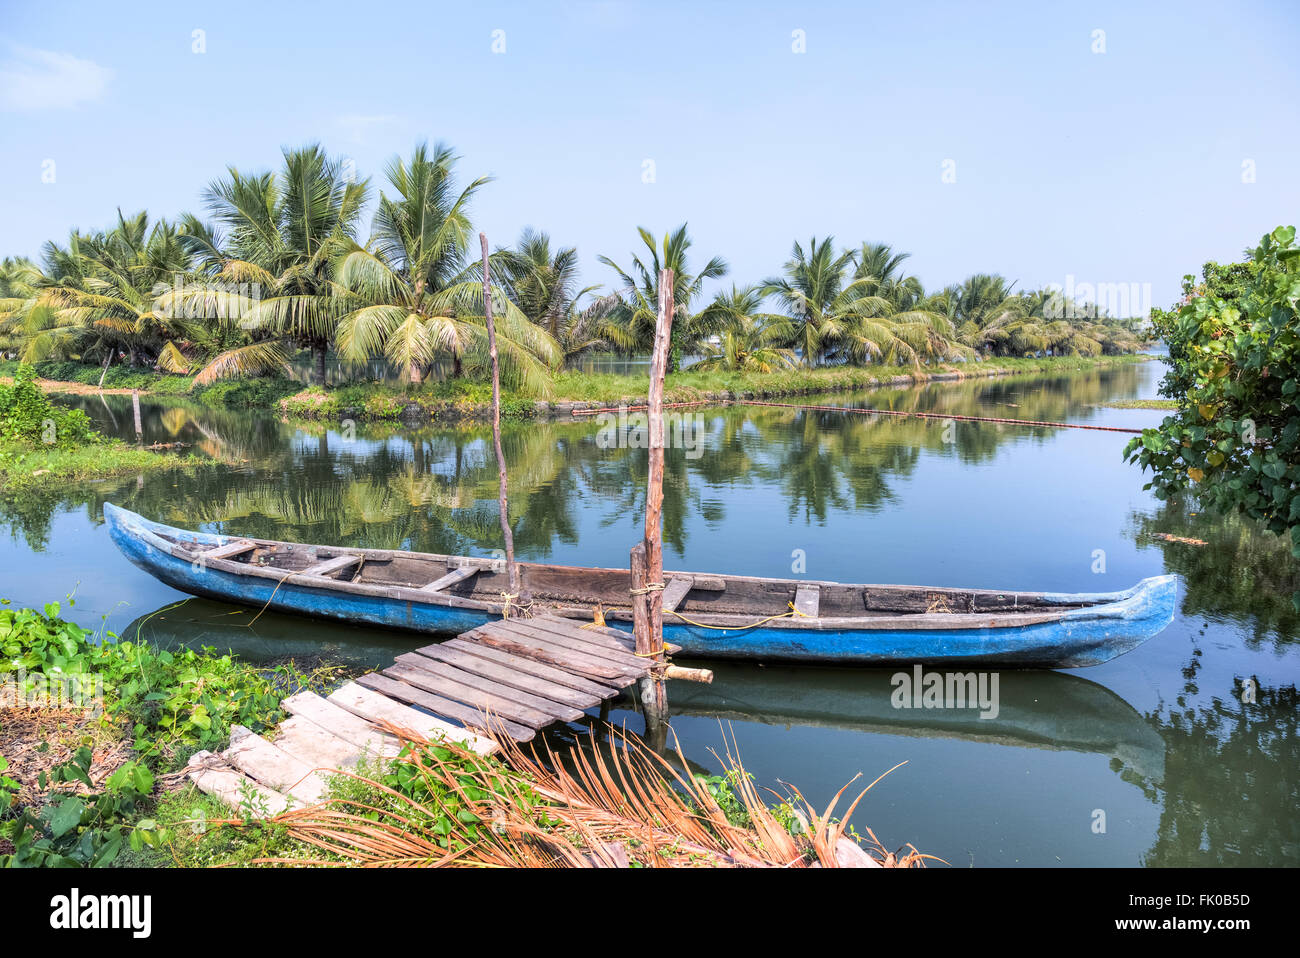 wooden boat in the backwaters of Kochin, Kerala, India, Asia - Stock Image